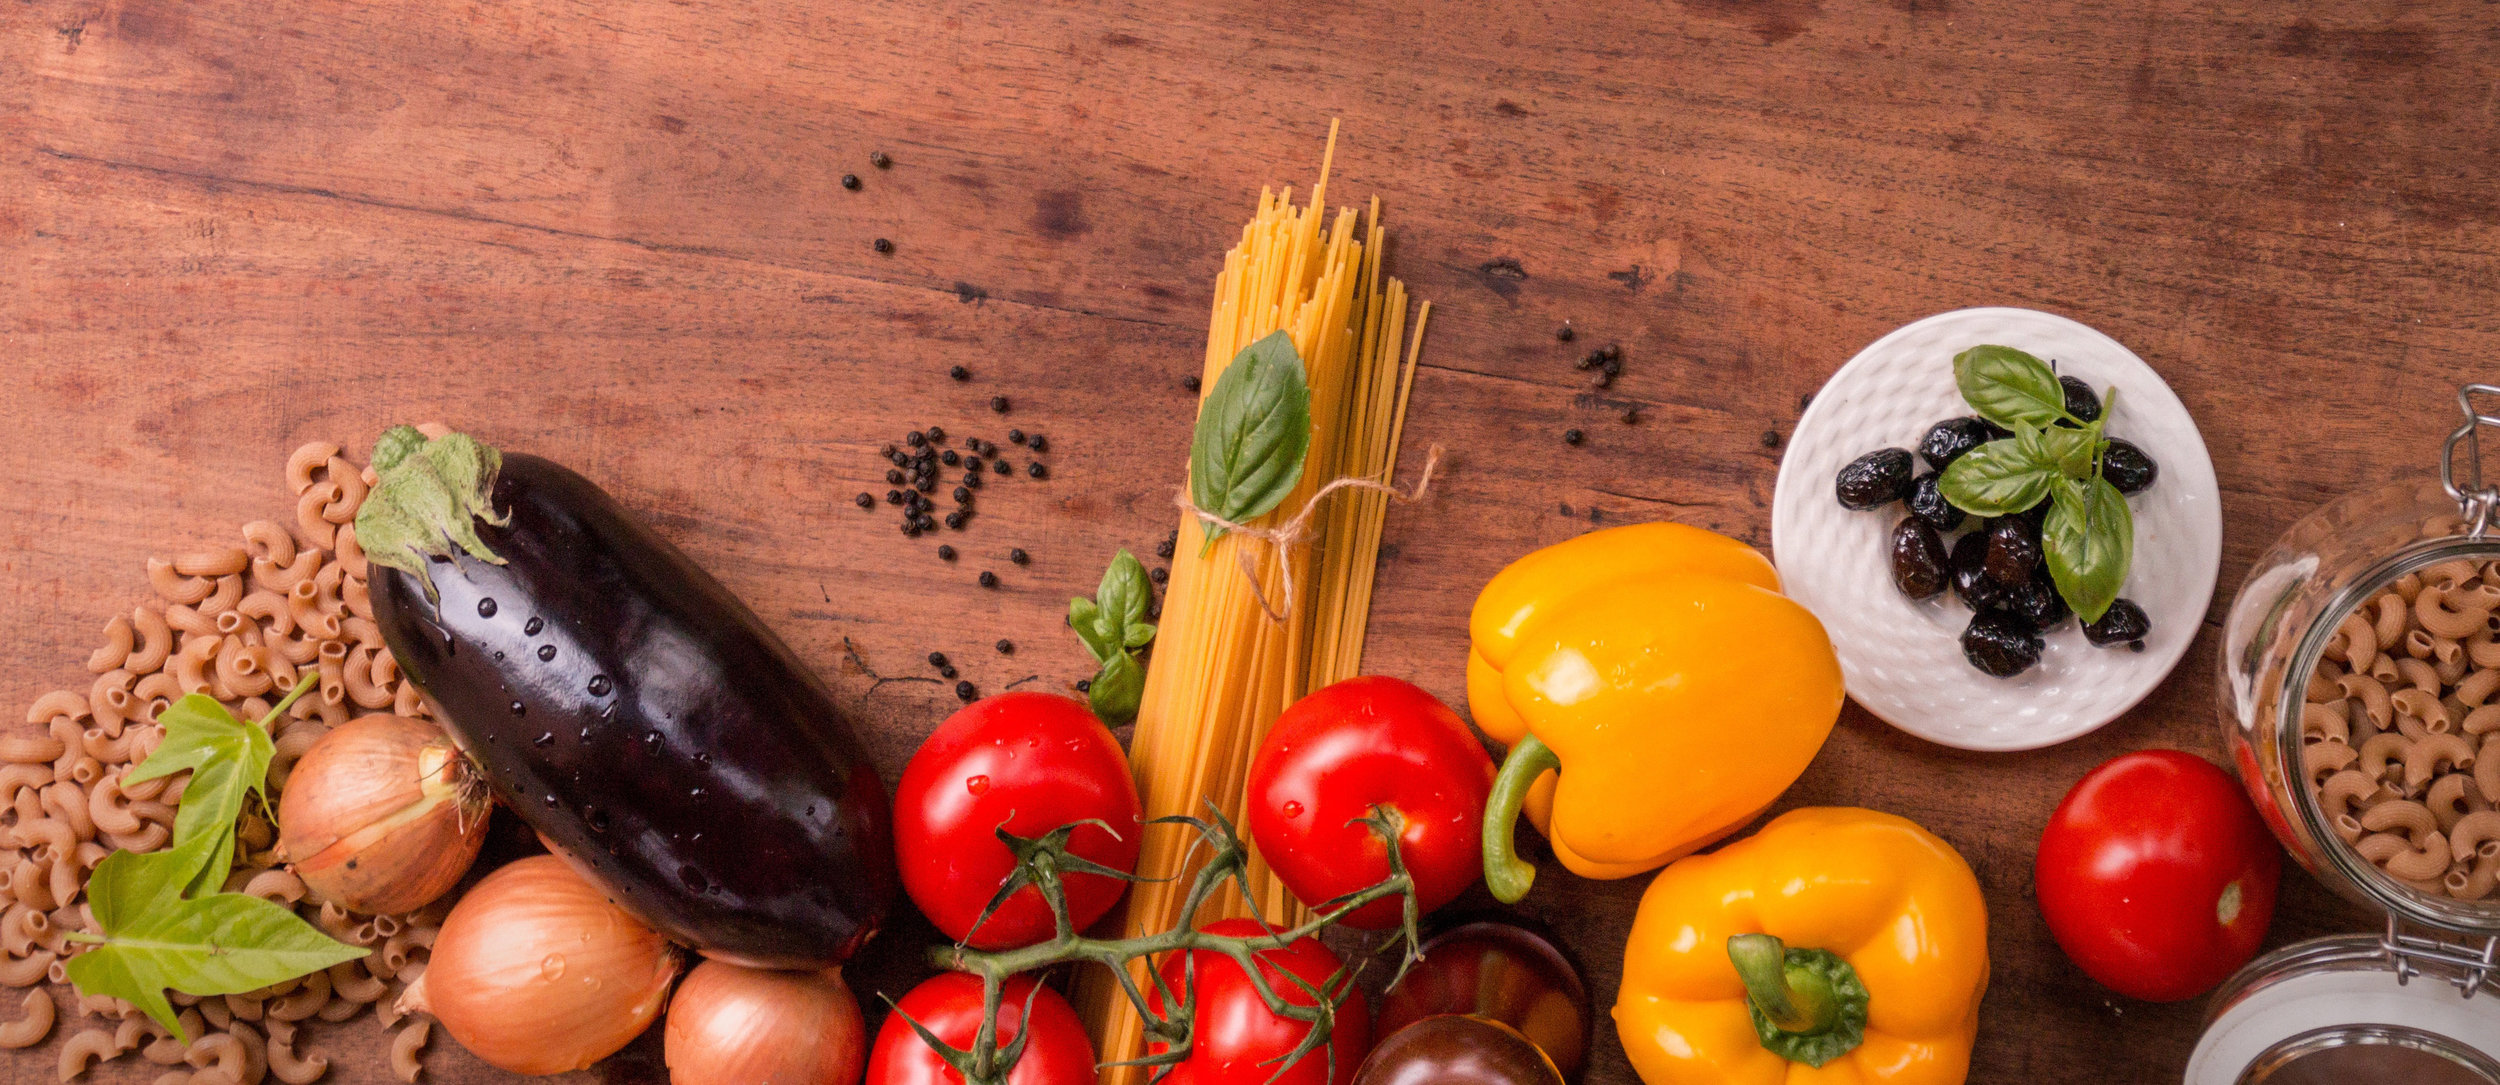 raw-ingredients-on-wood-picture_Cropped-copy.jpg